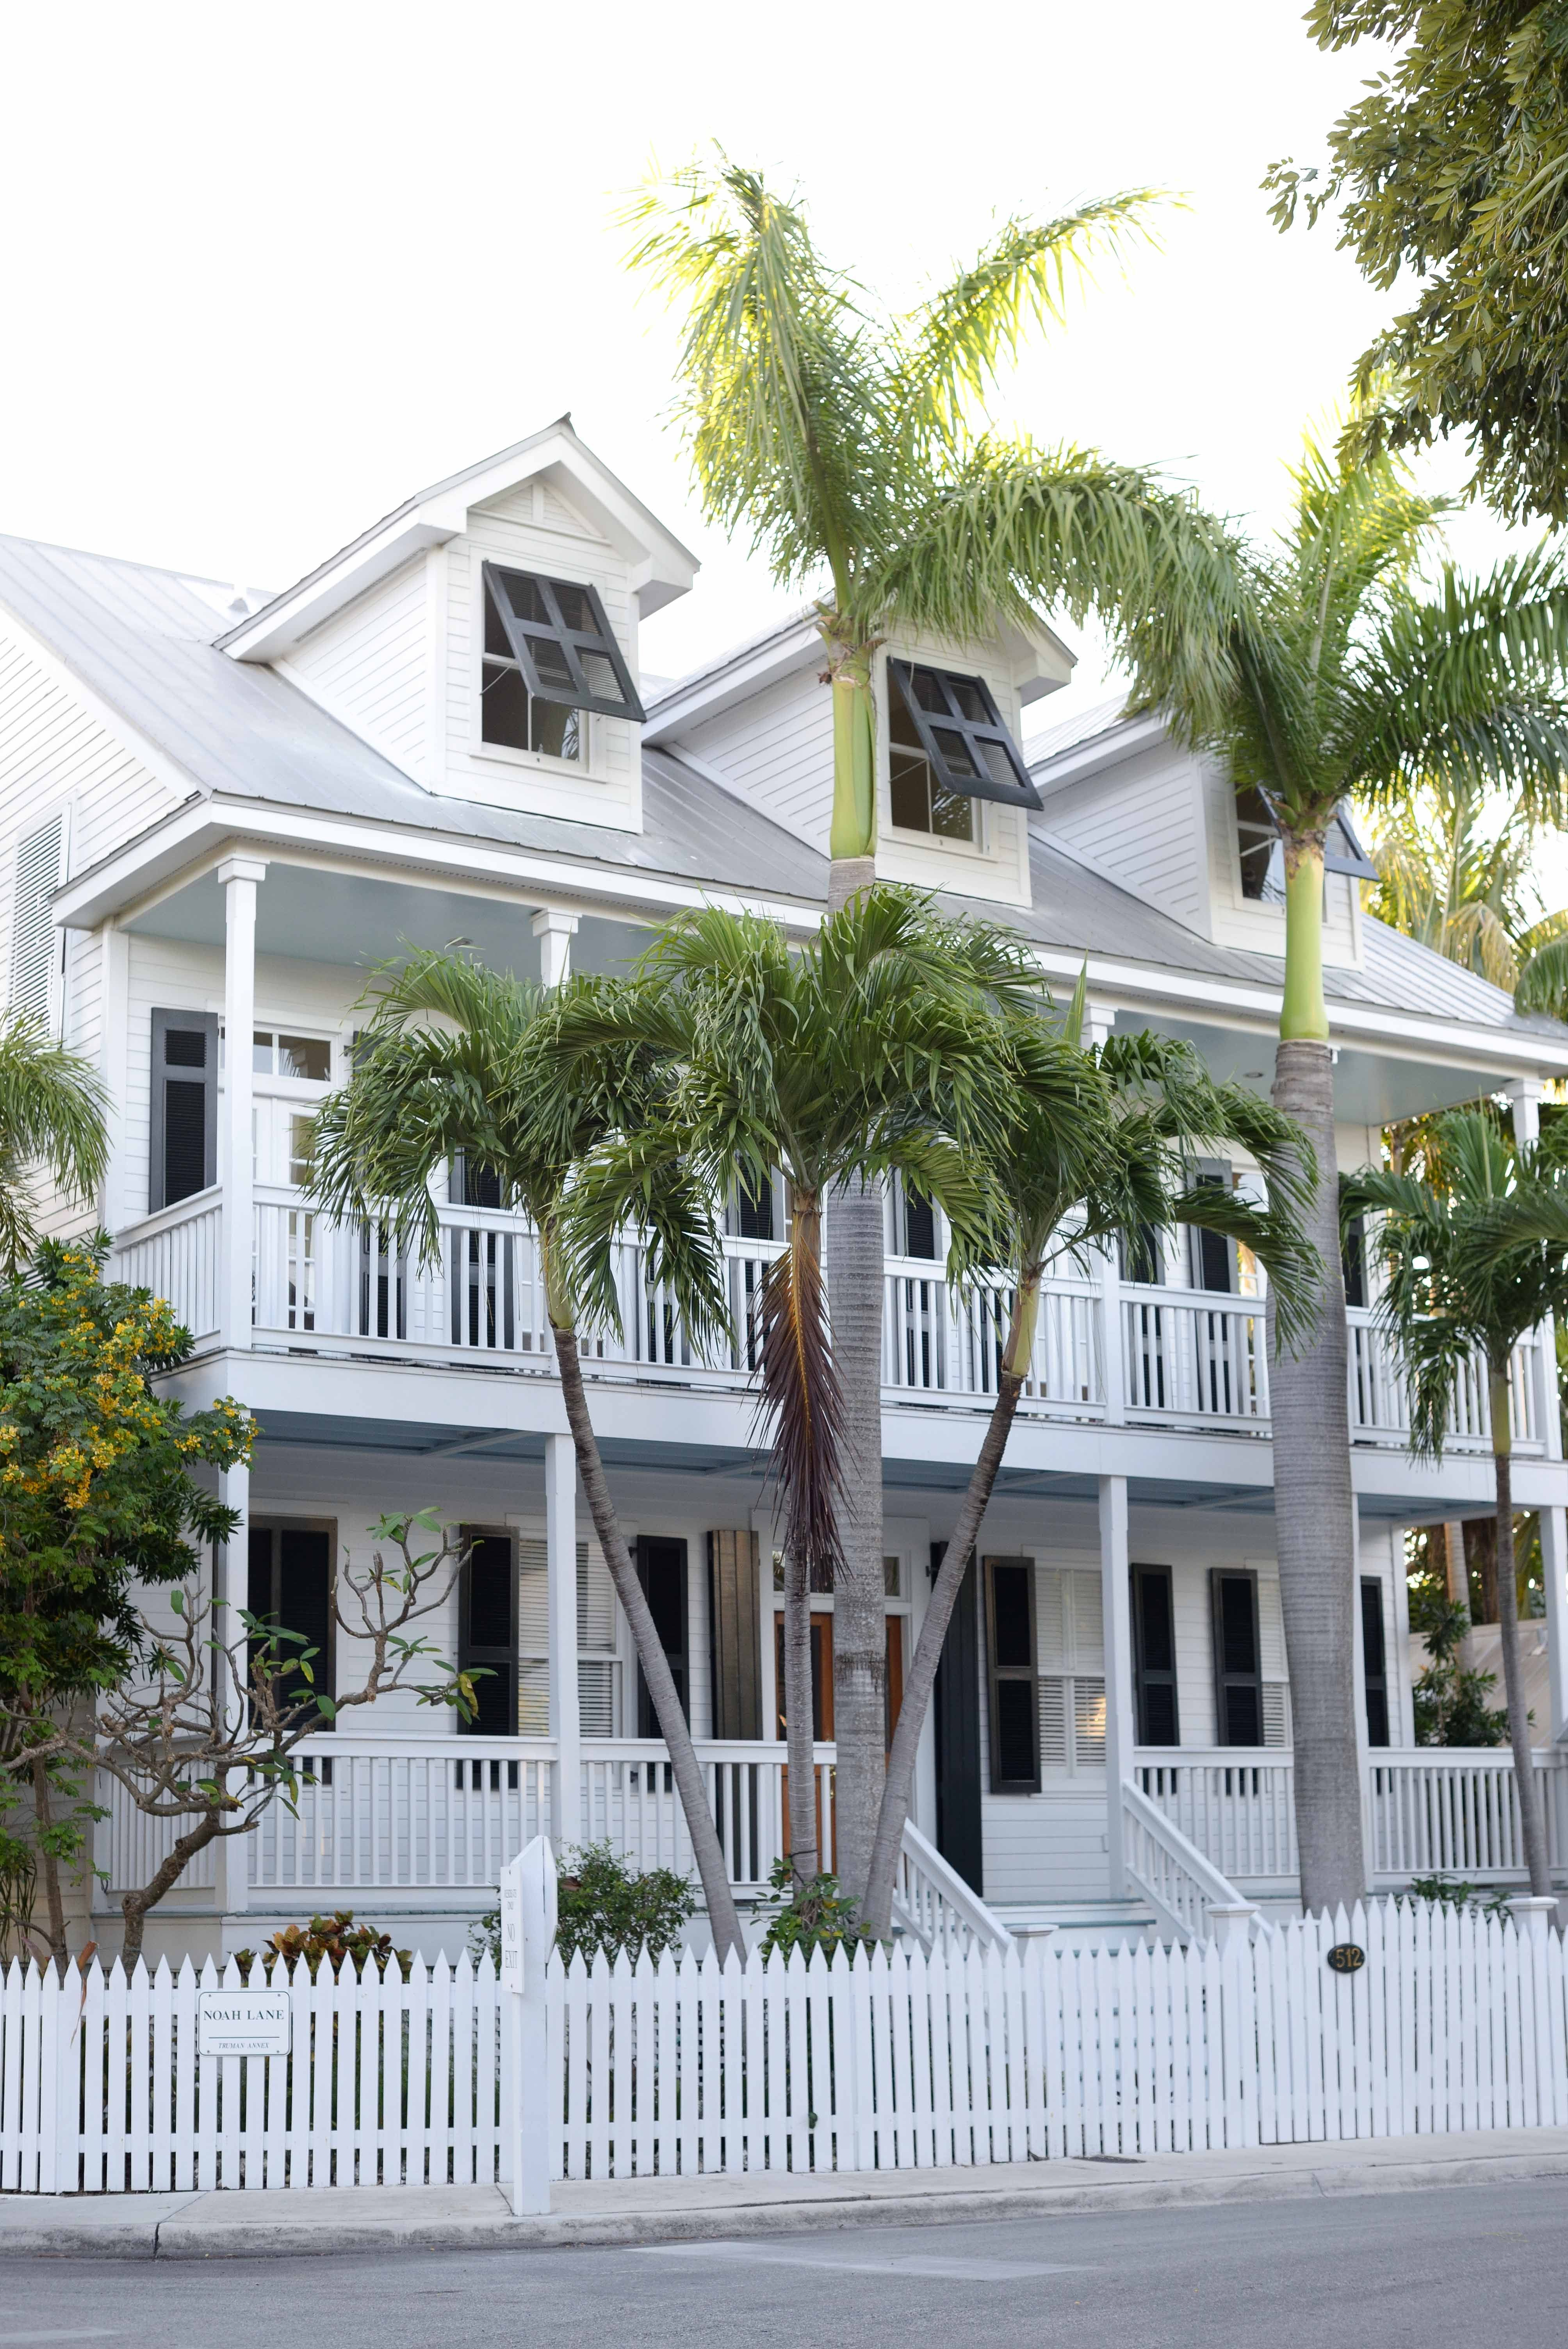 Vineyard Vines Shirts And Stitches Shorts And Gorgeous Houses Of Key West Kelly In The City Gorgeous Houses Key West House Key West Style